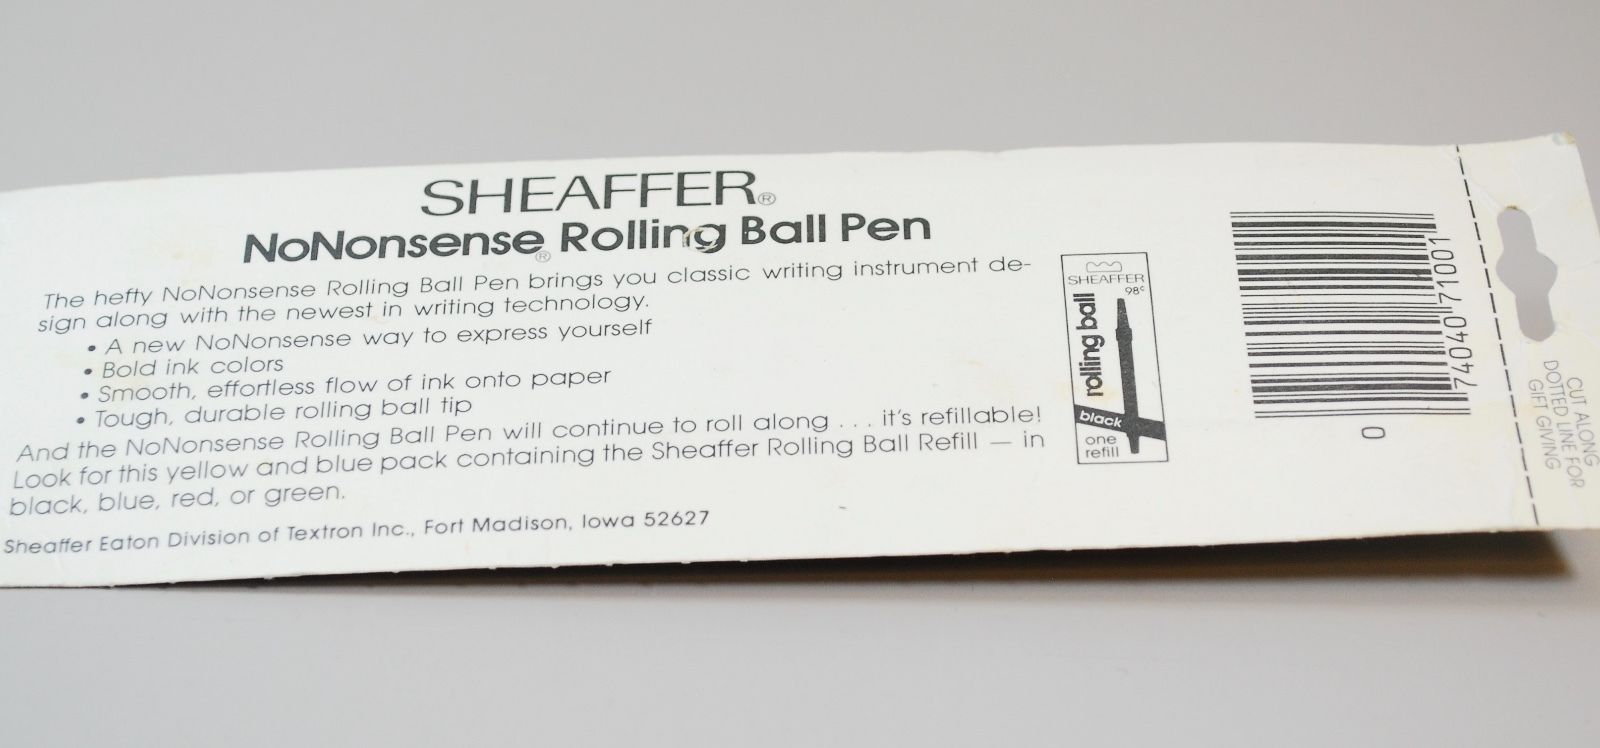 NEW Sheaffer No-Nonsense Rolling Ball Pen - Refillable  - New in Package - Red